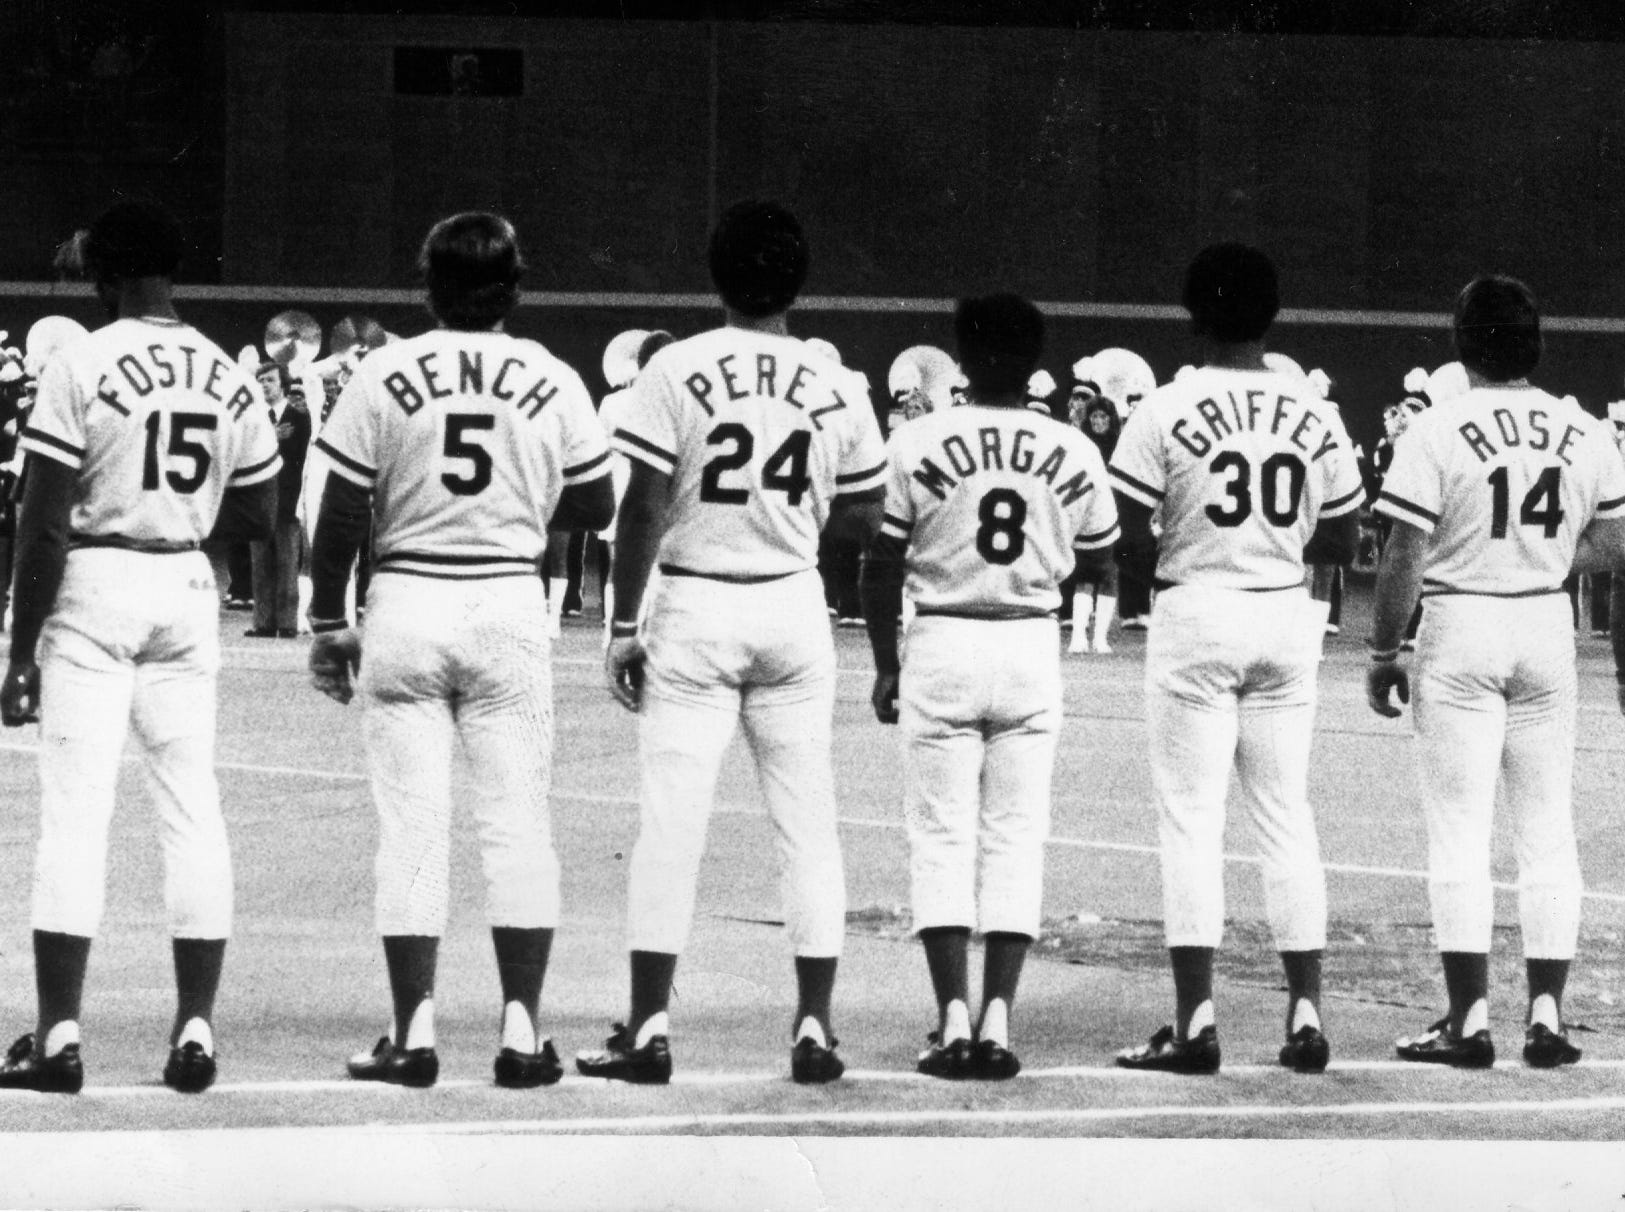 Text: World Series Cincinnati Reds 1975. Left to right: Dave Concepcion, George Foster, Johnny Bench, Tony Perez, Joe Morgan, Ken Griffey Sr., Pete Rose and Sparky Anderson.  Game 3, 1975 World Series, Riverfront Stadium October 14, 1975 The Enquirer/Fred Straub.